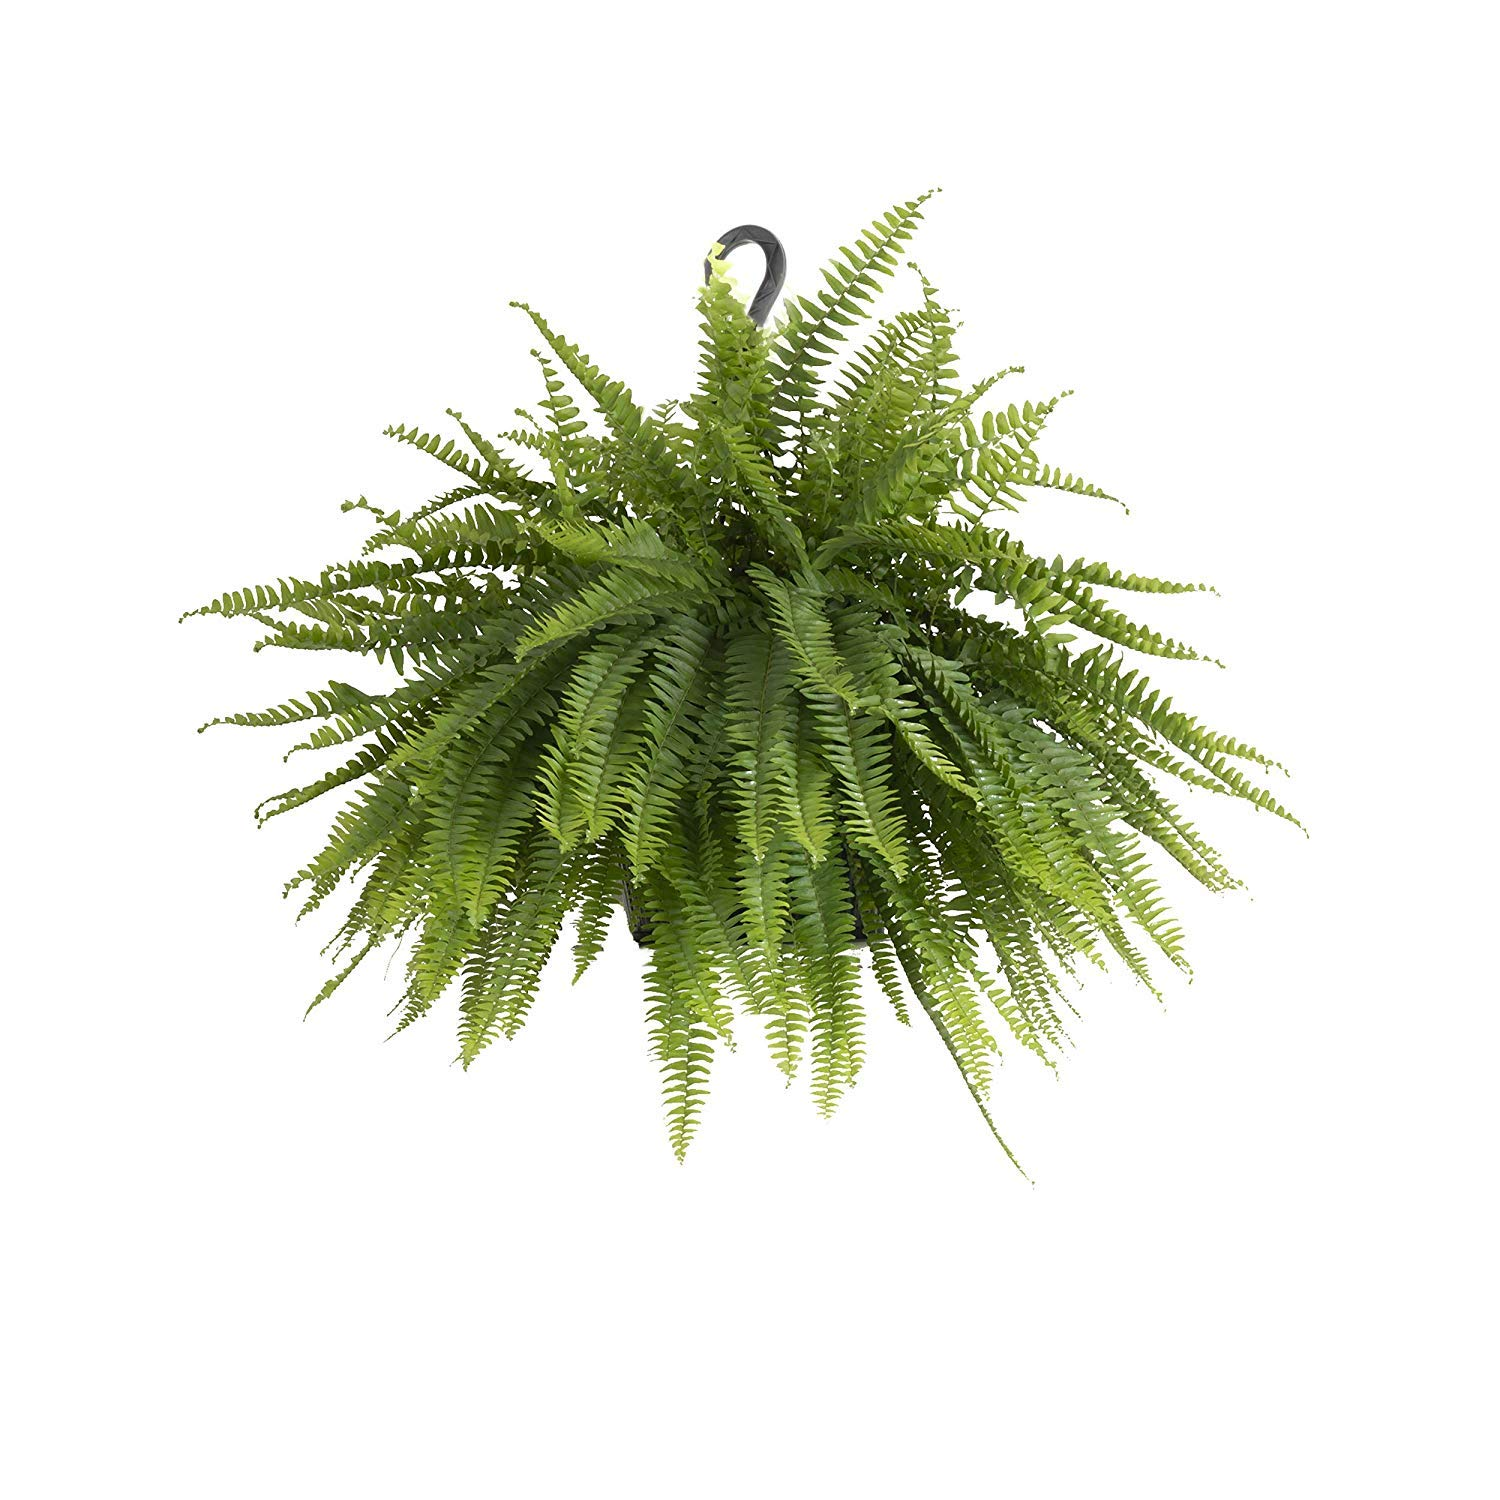 United Nursery Boston Fern, Live Indoor and Outdoor Hanging Basket Plant. 30'' Shipping Size. Shipped Fresh from Our Florida Farm